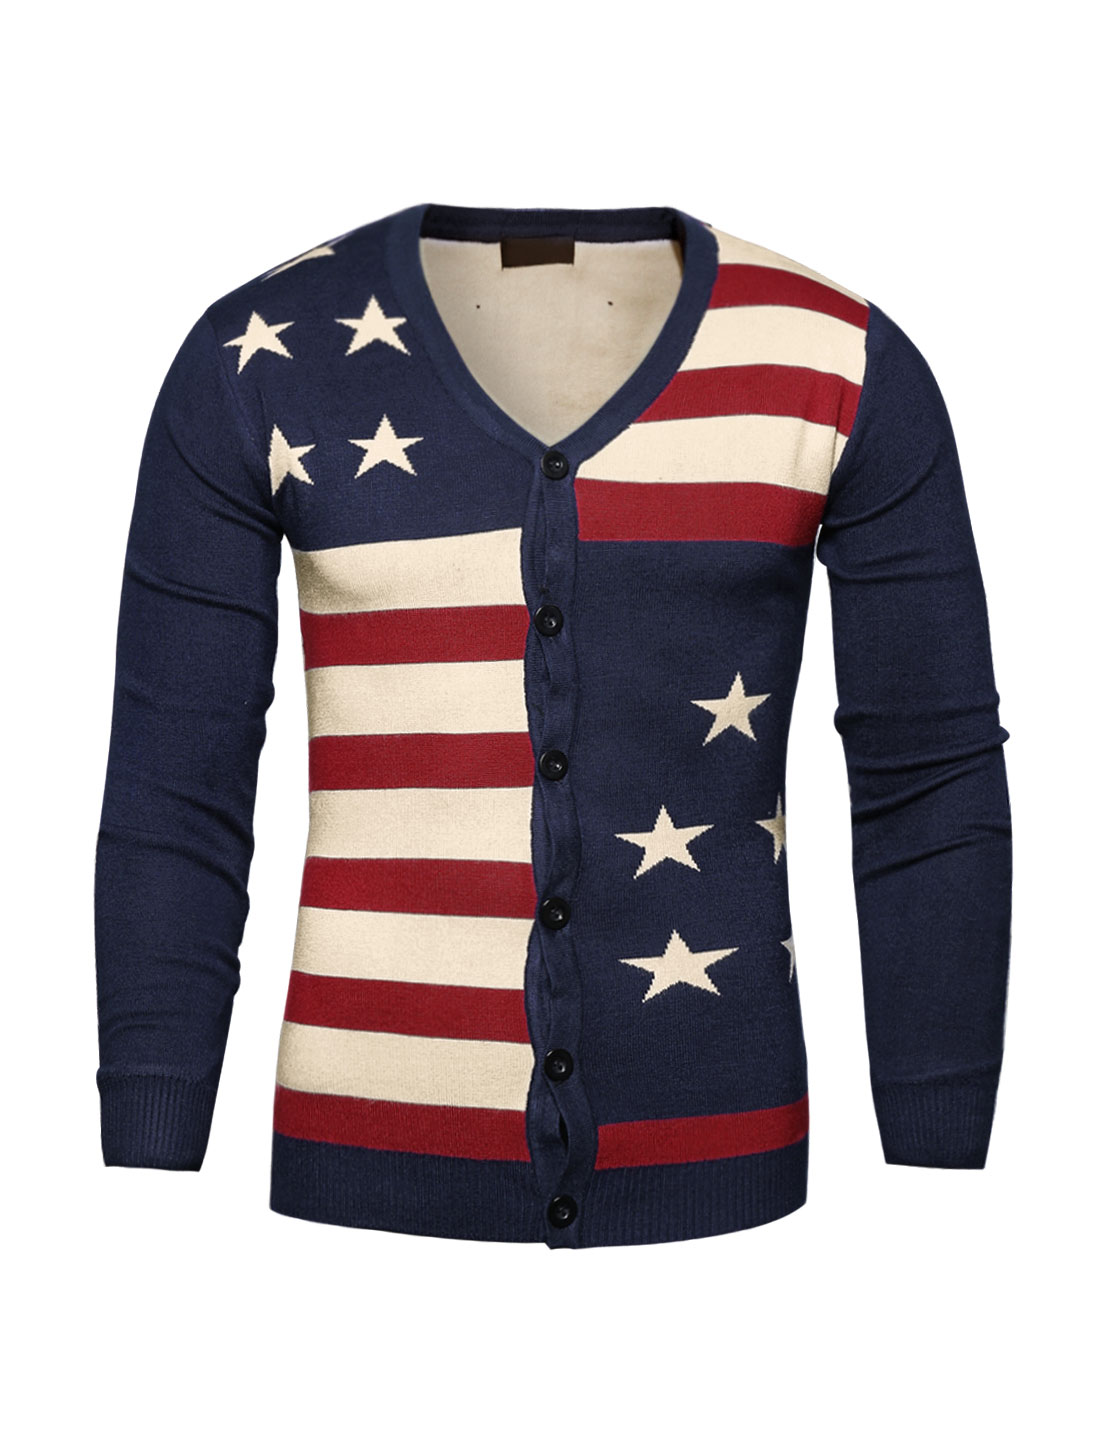 Man Contrast Color Striped Stars Knit Cardigan Blue S